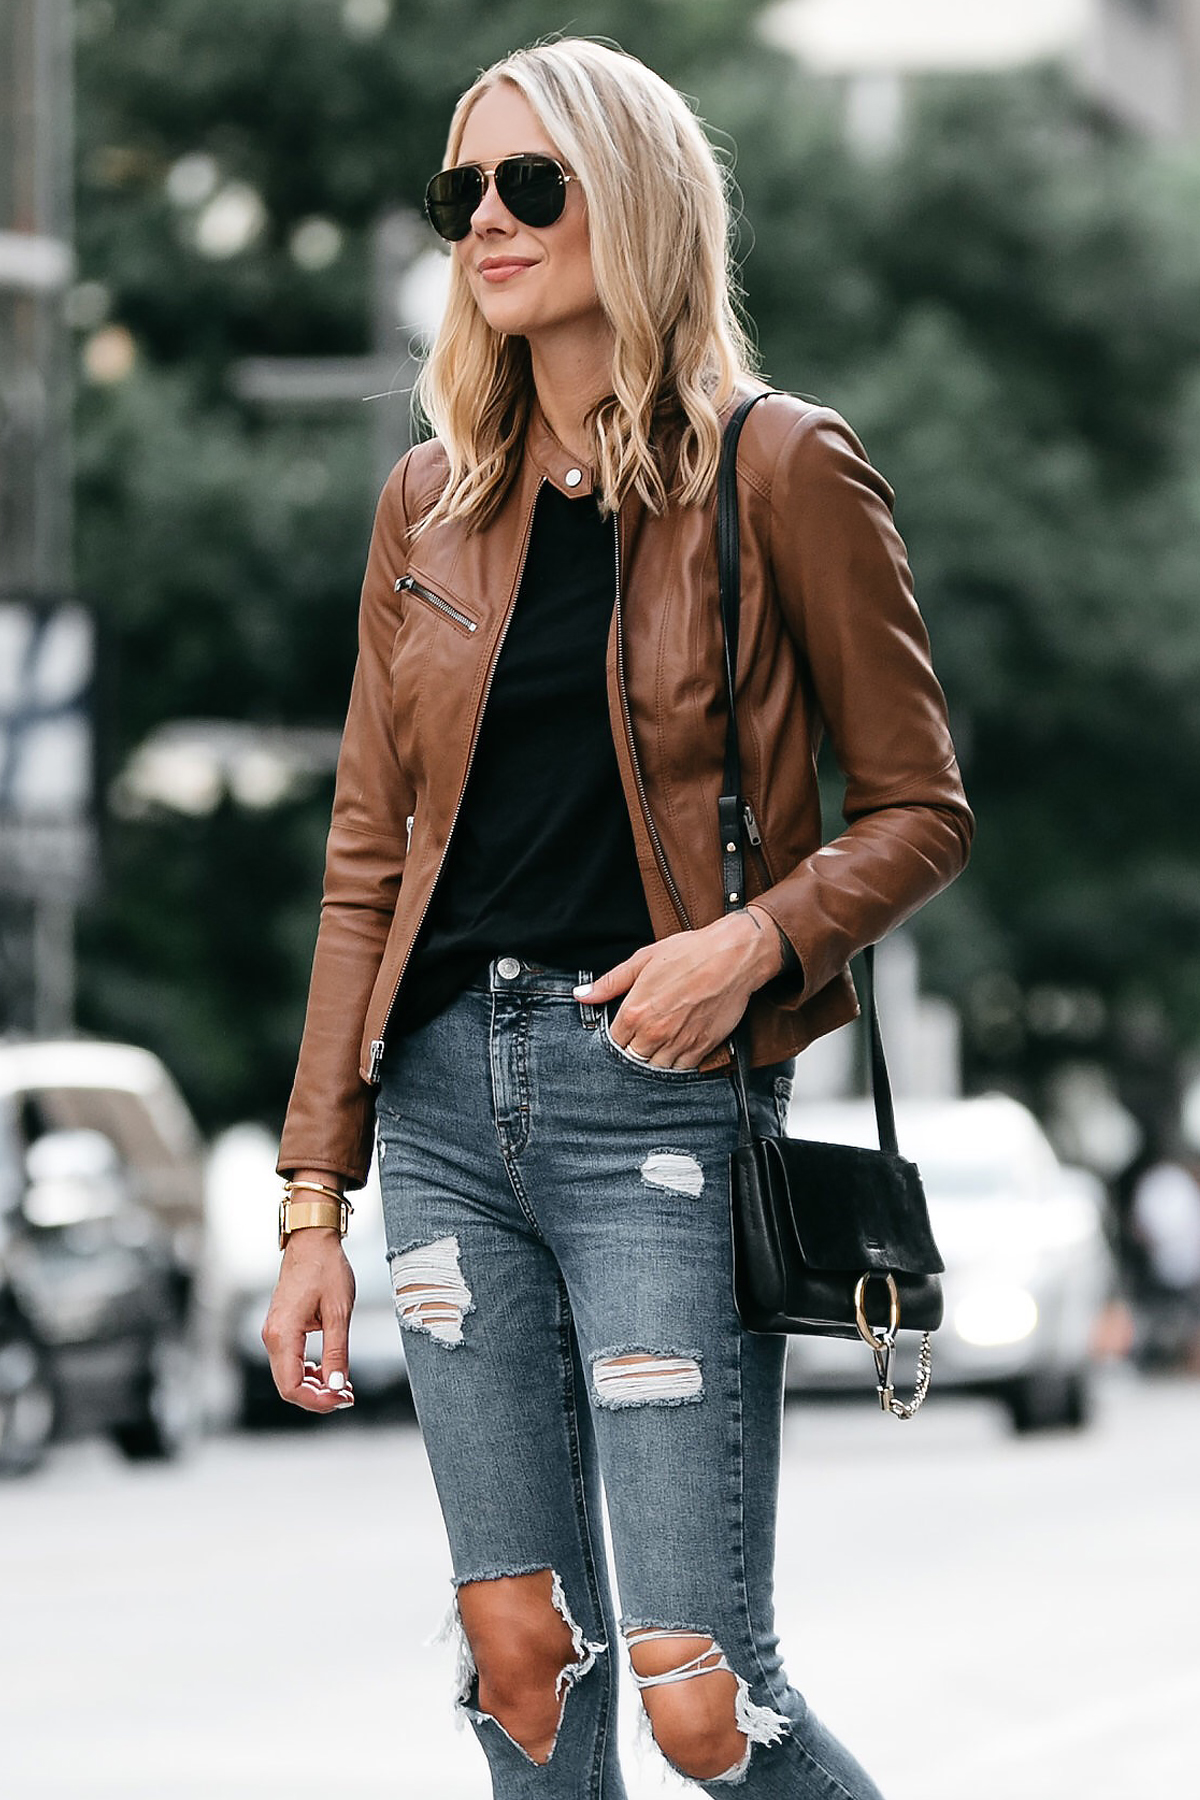 Blonde Woman Wearing Tan Leather Jacket Black Tshirt Denim Ripped Skinny Jeans Outfit Chloe Faye Handbag Fashion Jackson Dallas Blogger Fashion Blogger Street Style